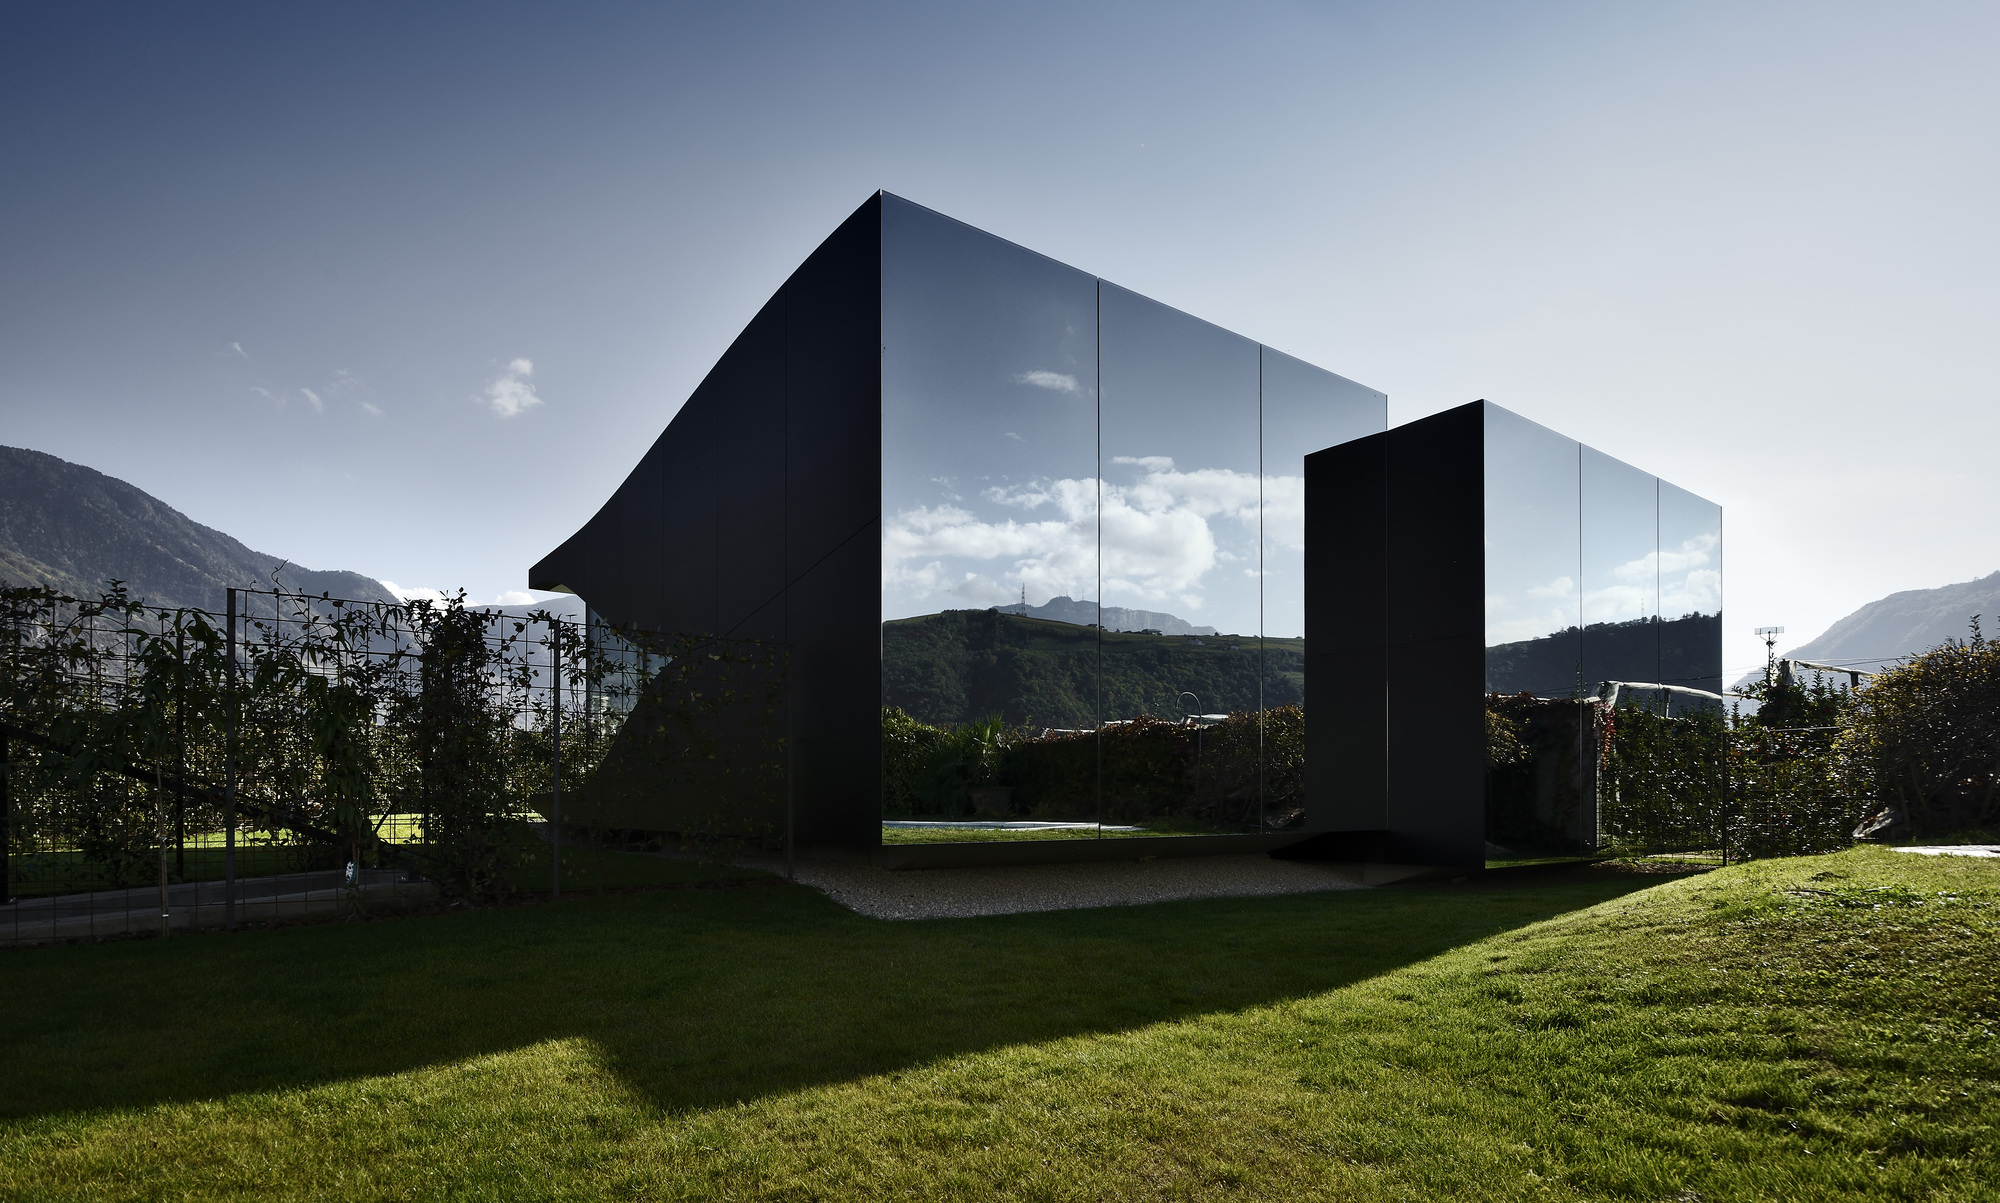 The Mirror Houses / Peter Pichler Architecture (9)